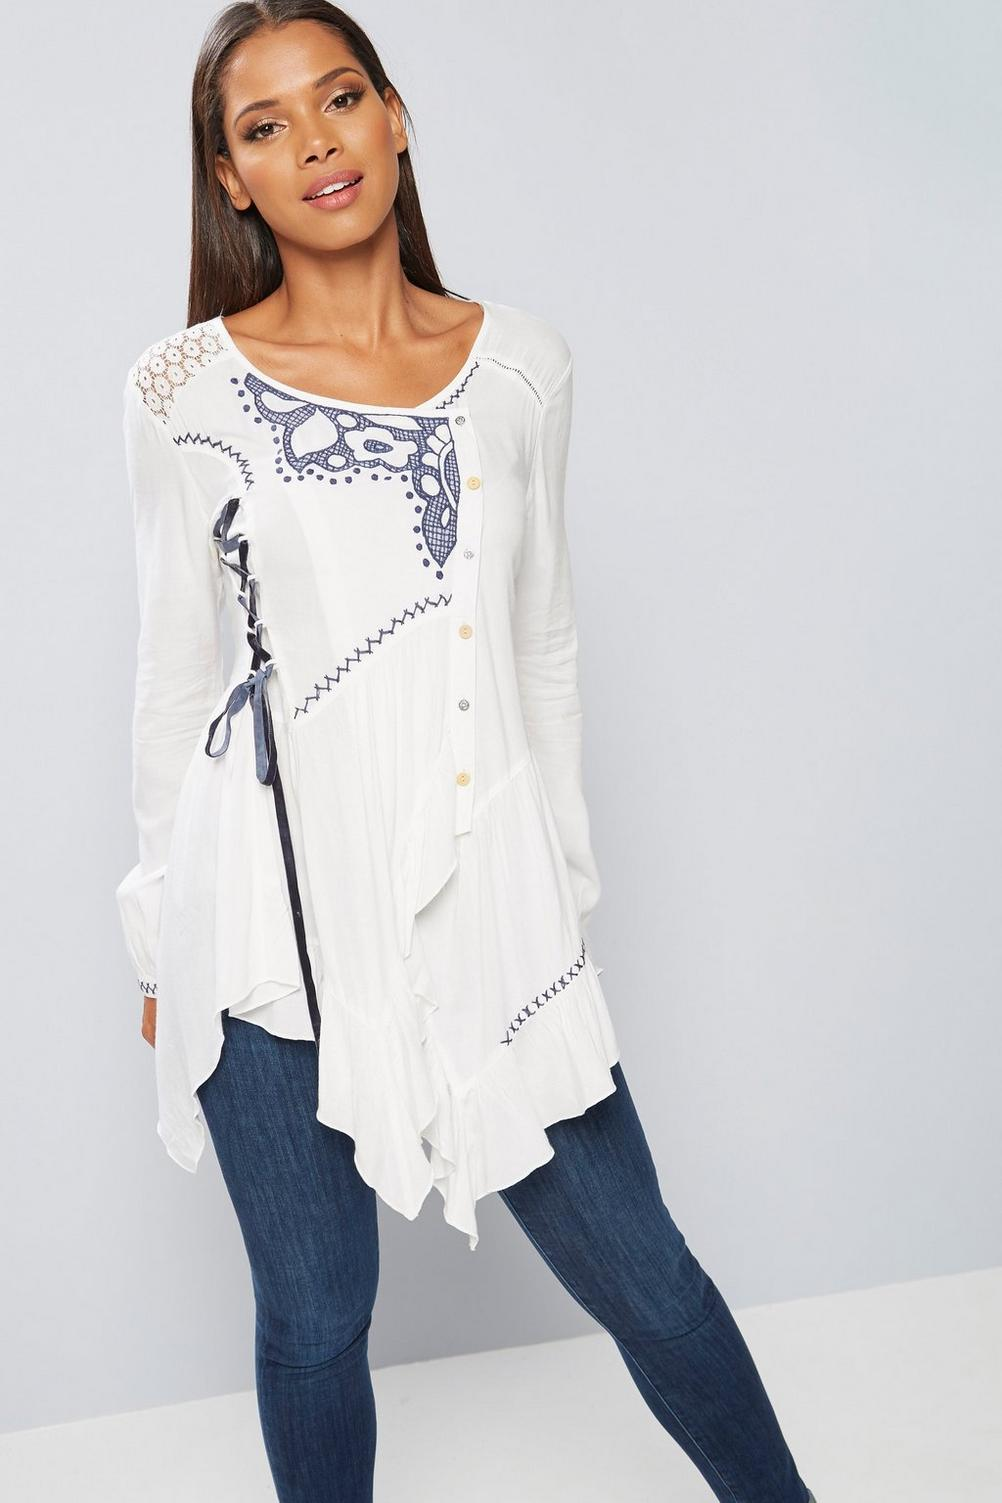 SL1456 Ex Chainstore Santorini White Lace Up Blouse x10